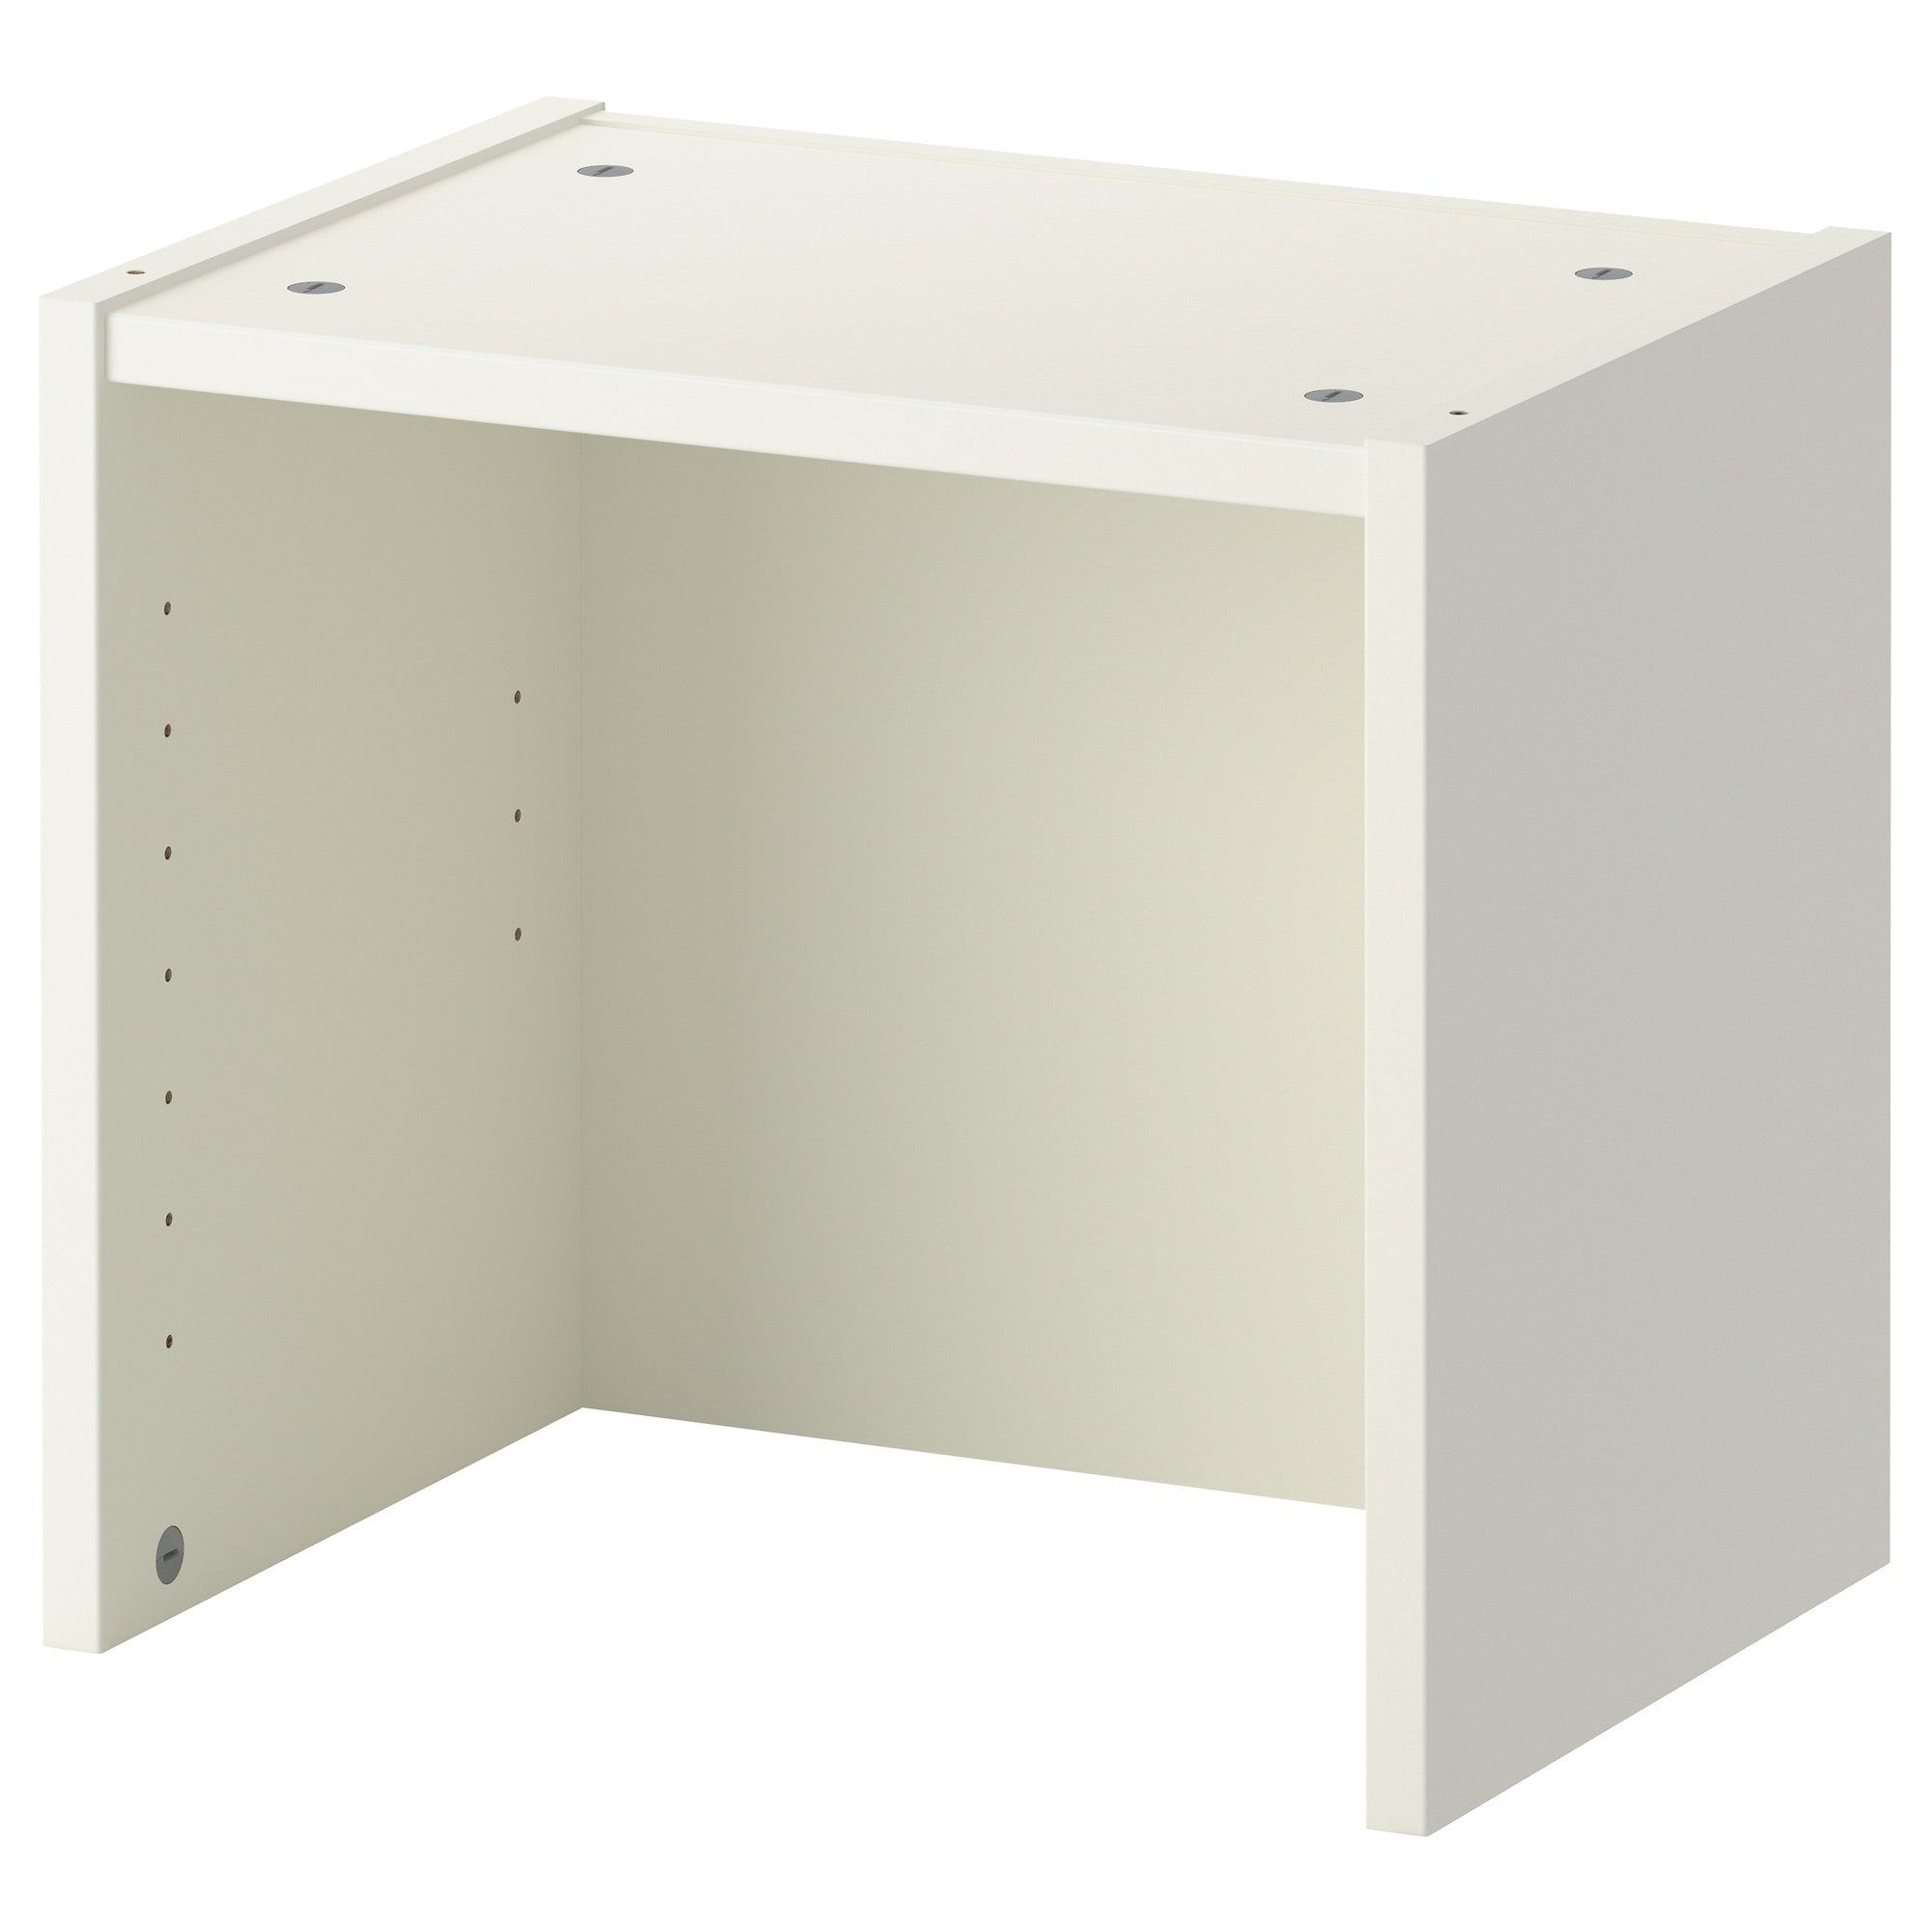 Ikea Ante Vetro Billy.Ikea Billy White Height Extension Unit In 2020 Ikea Bookcase